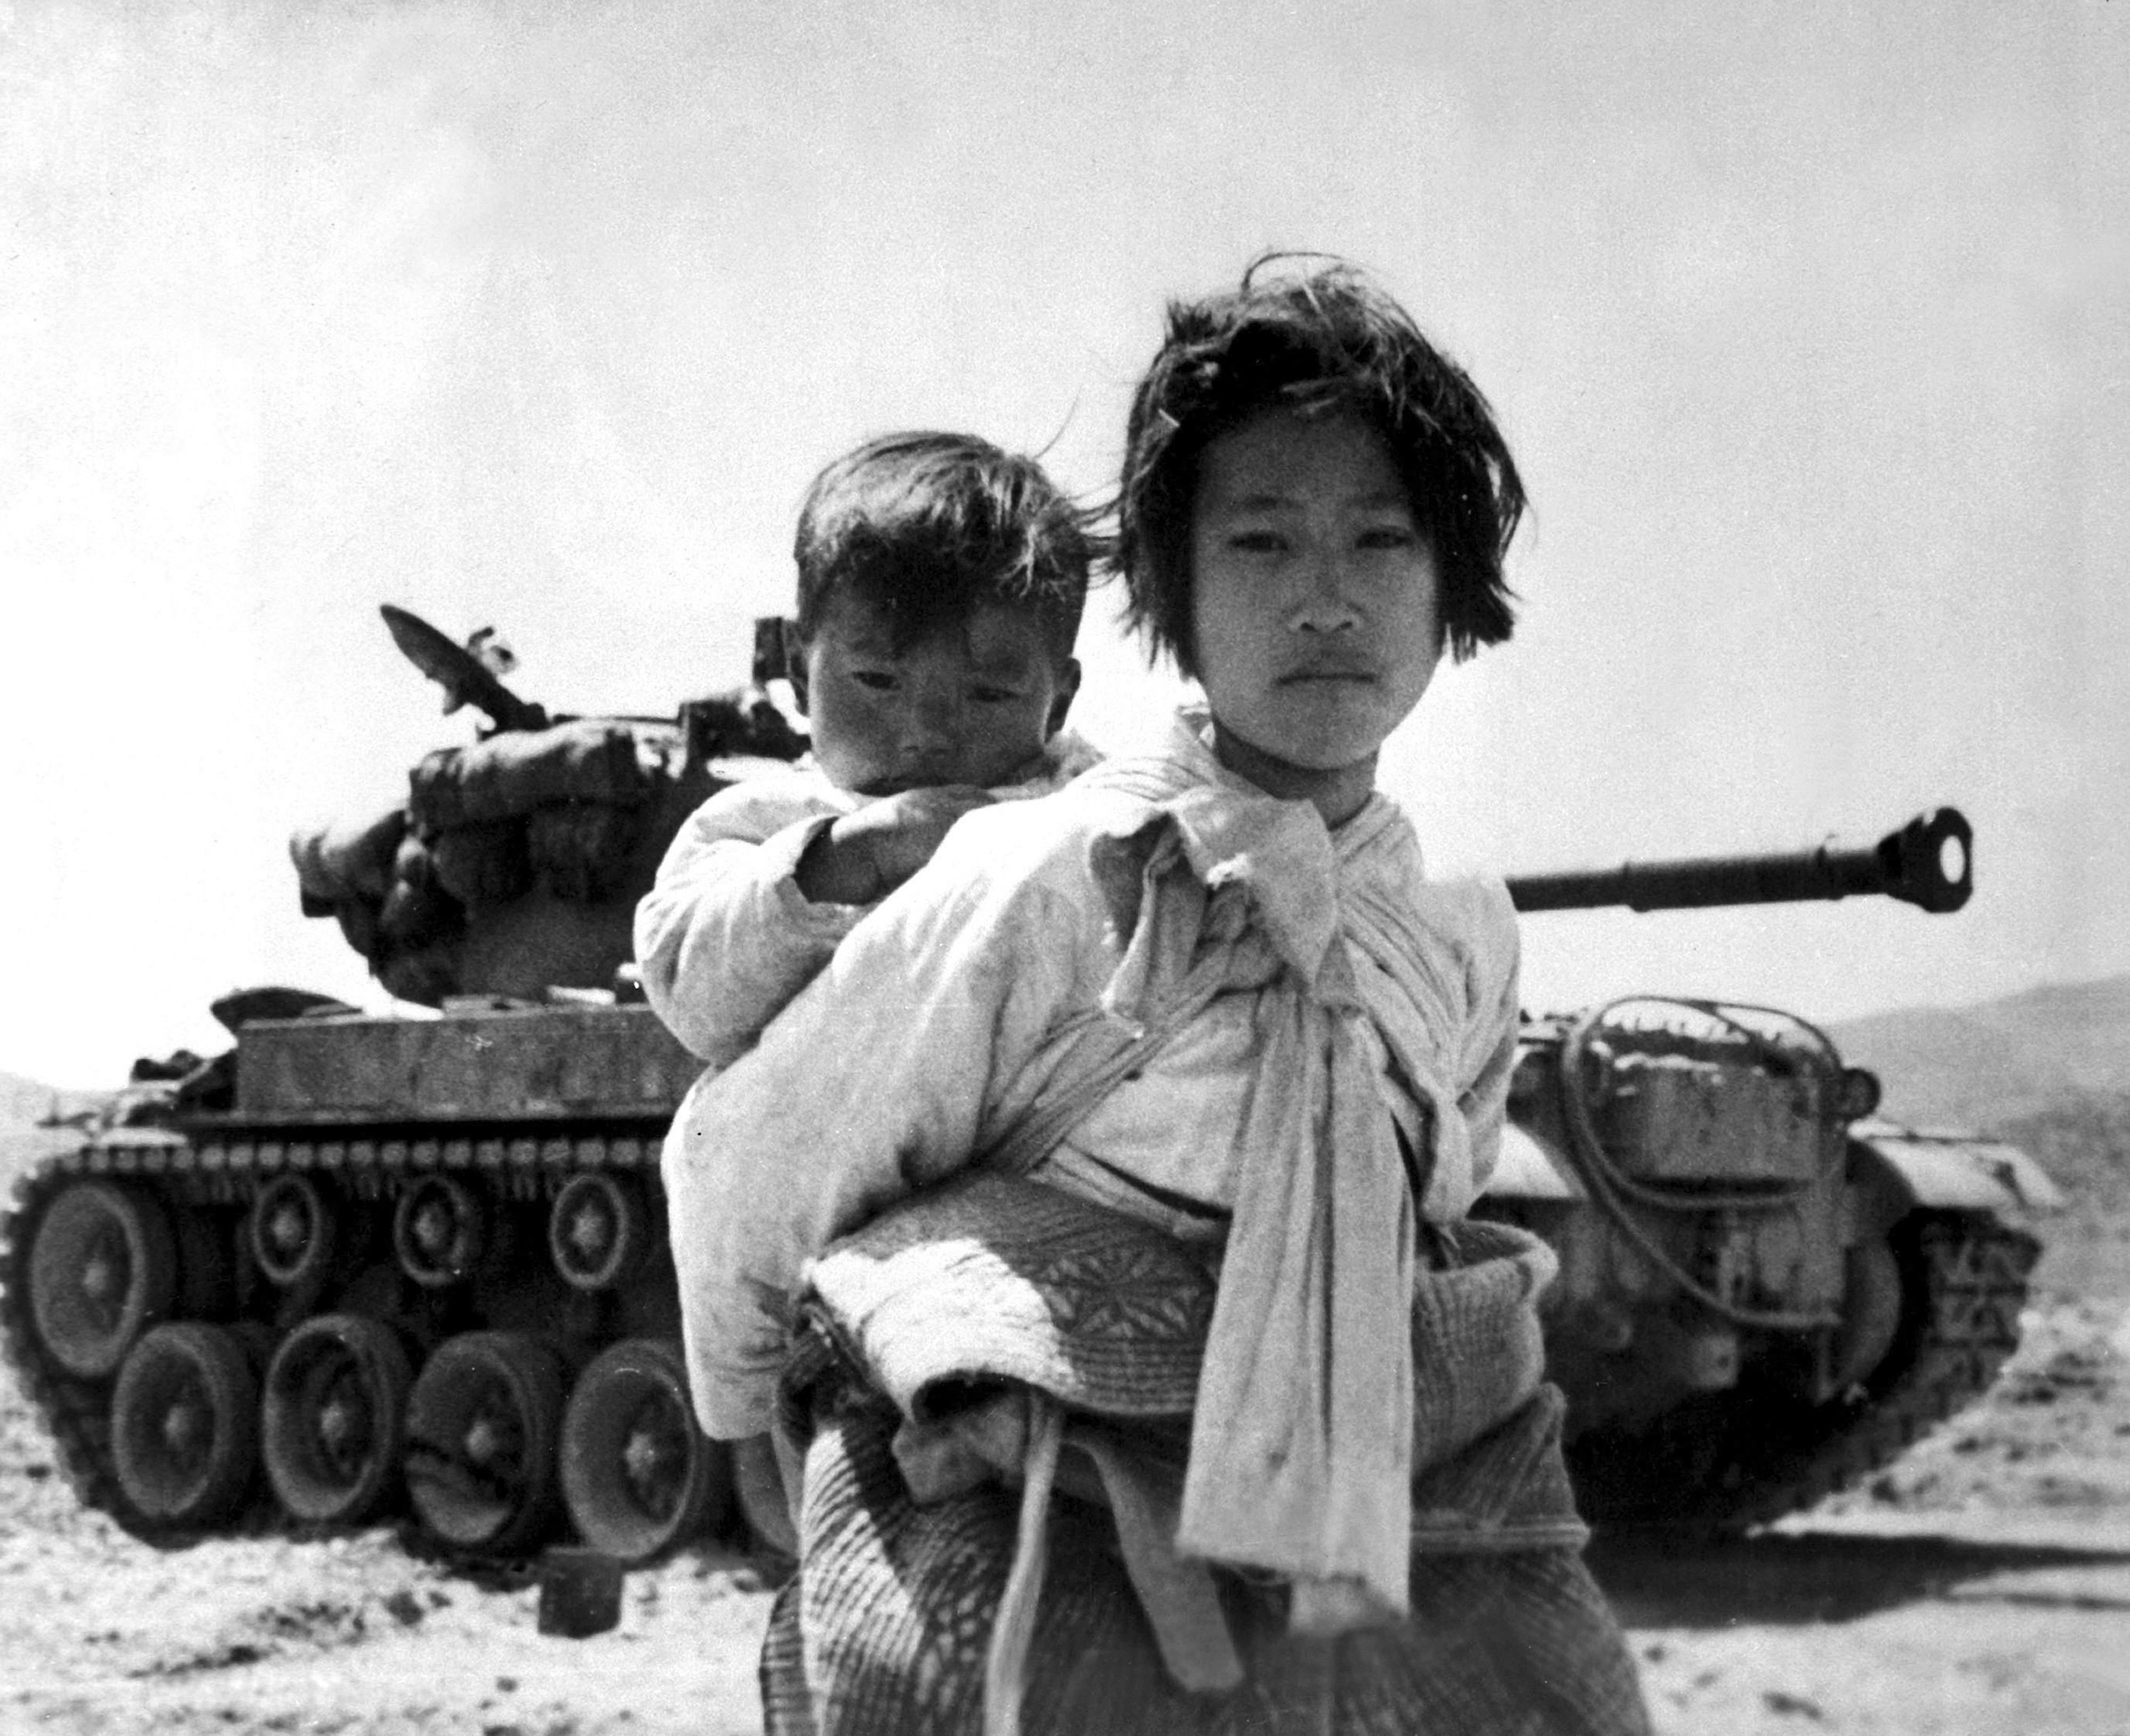 An archival photo from the Korean War. Carrying her baby brother on her back, a war weary Korean girl walks by a stalled M-26 tank, at Haengju, Korea, June, 1951.